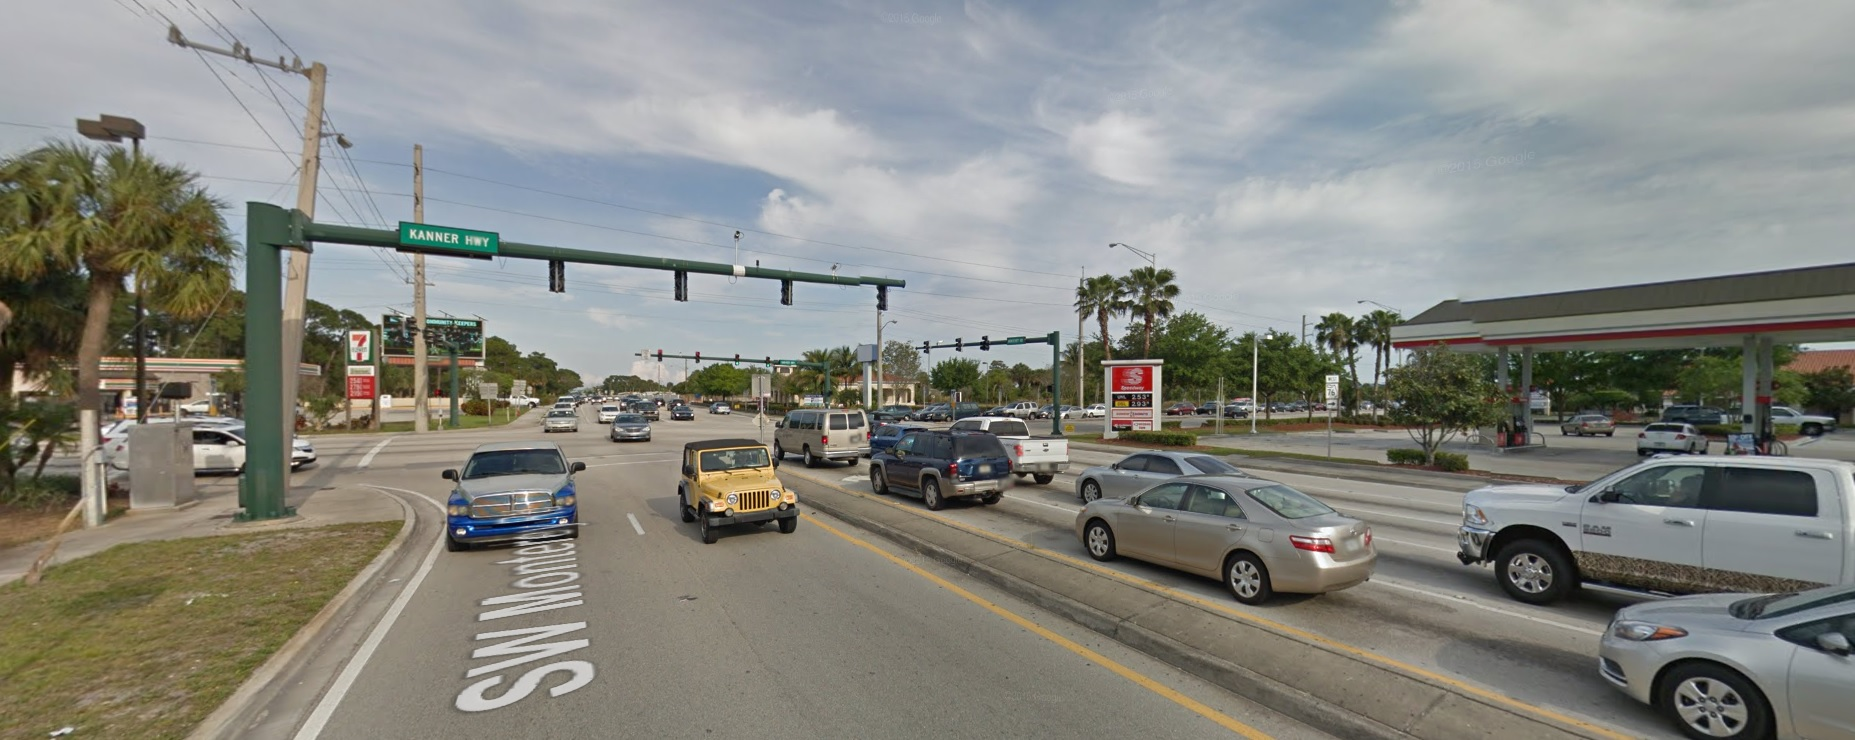 Intersection of SE Monterey rd and S Kanner Highway, Google Streetview